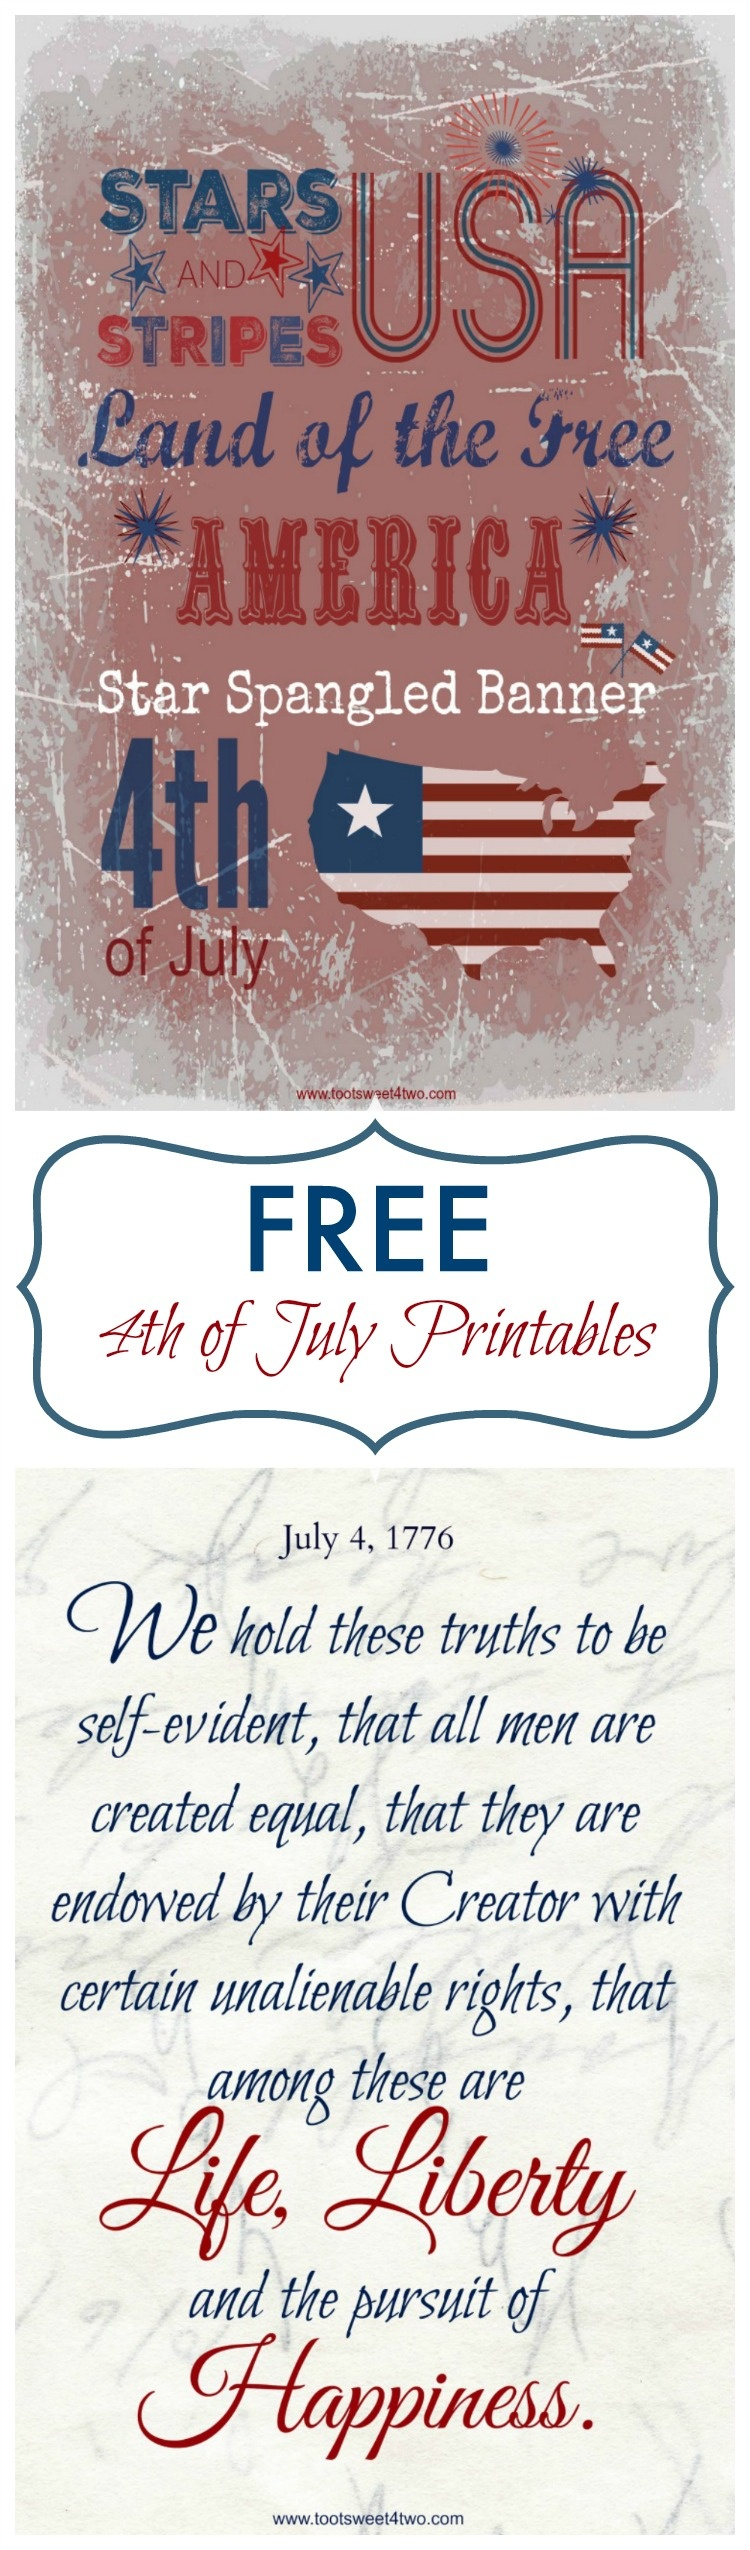 Free 4Th Of July Printables - Toot Sweet 4 Two - Free 4Th Of July Printables